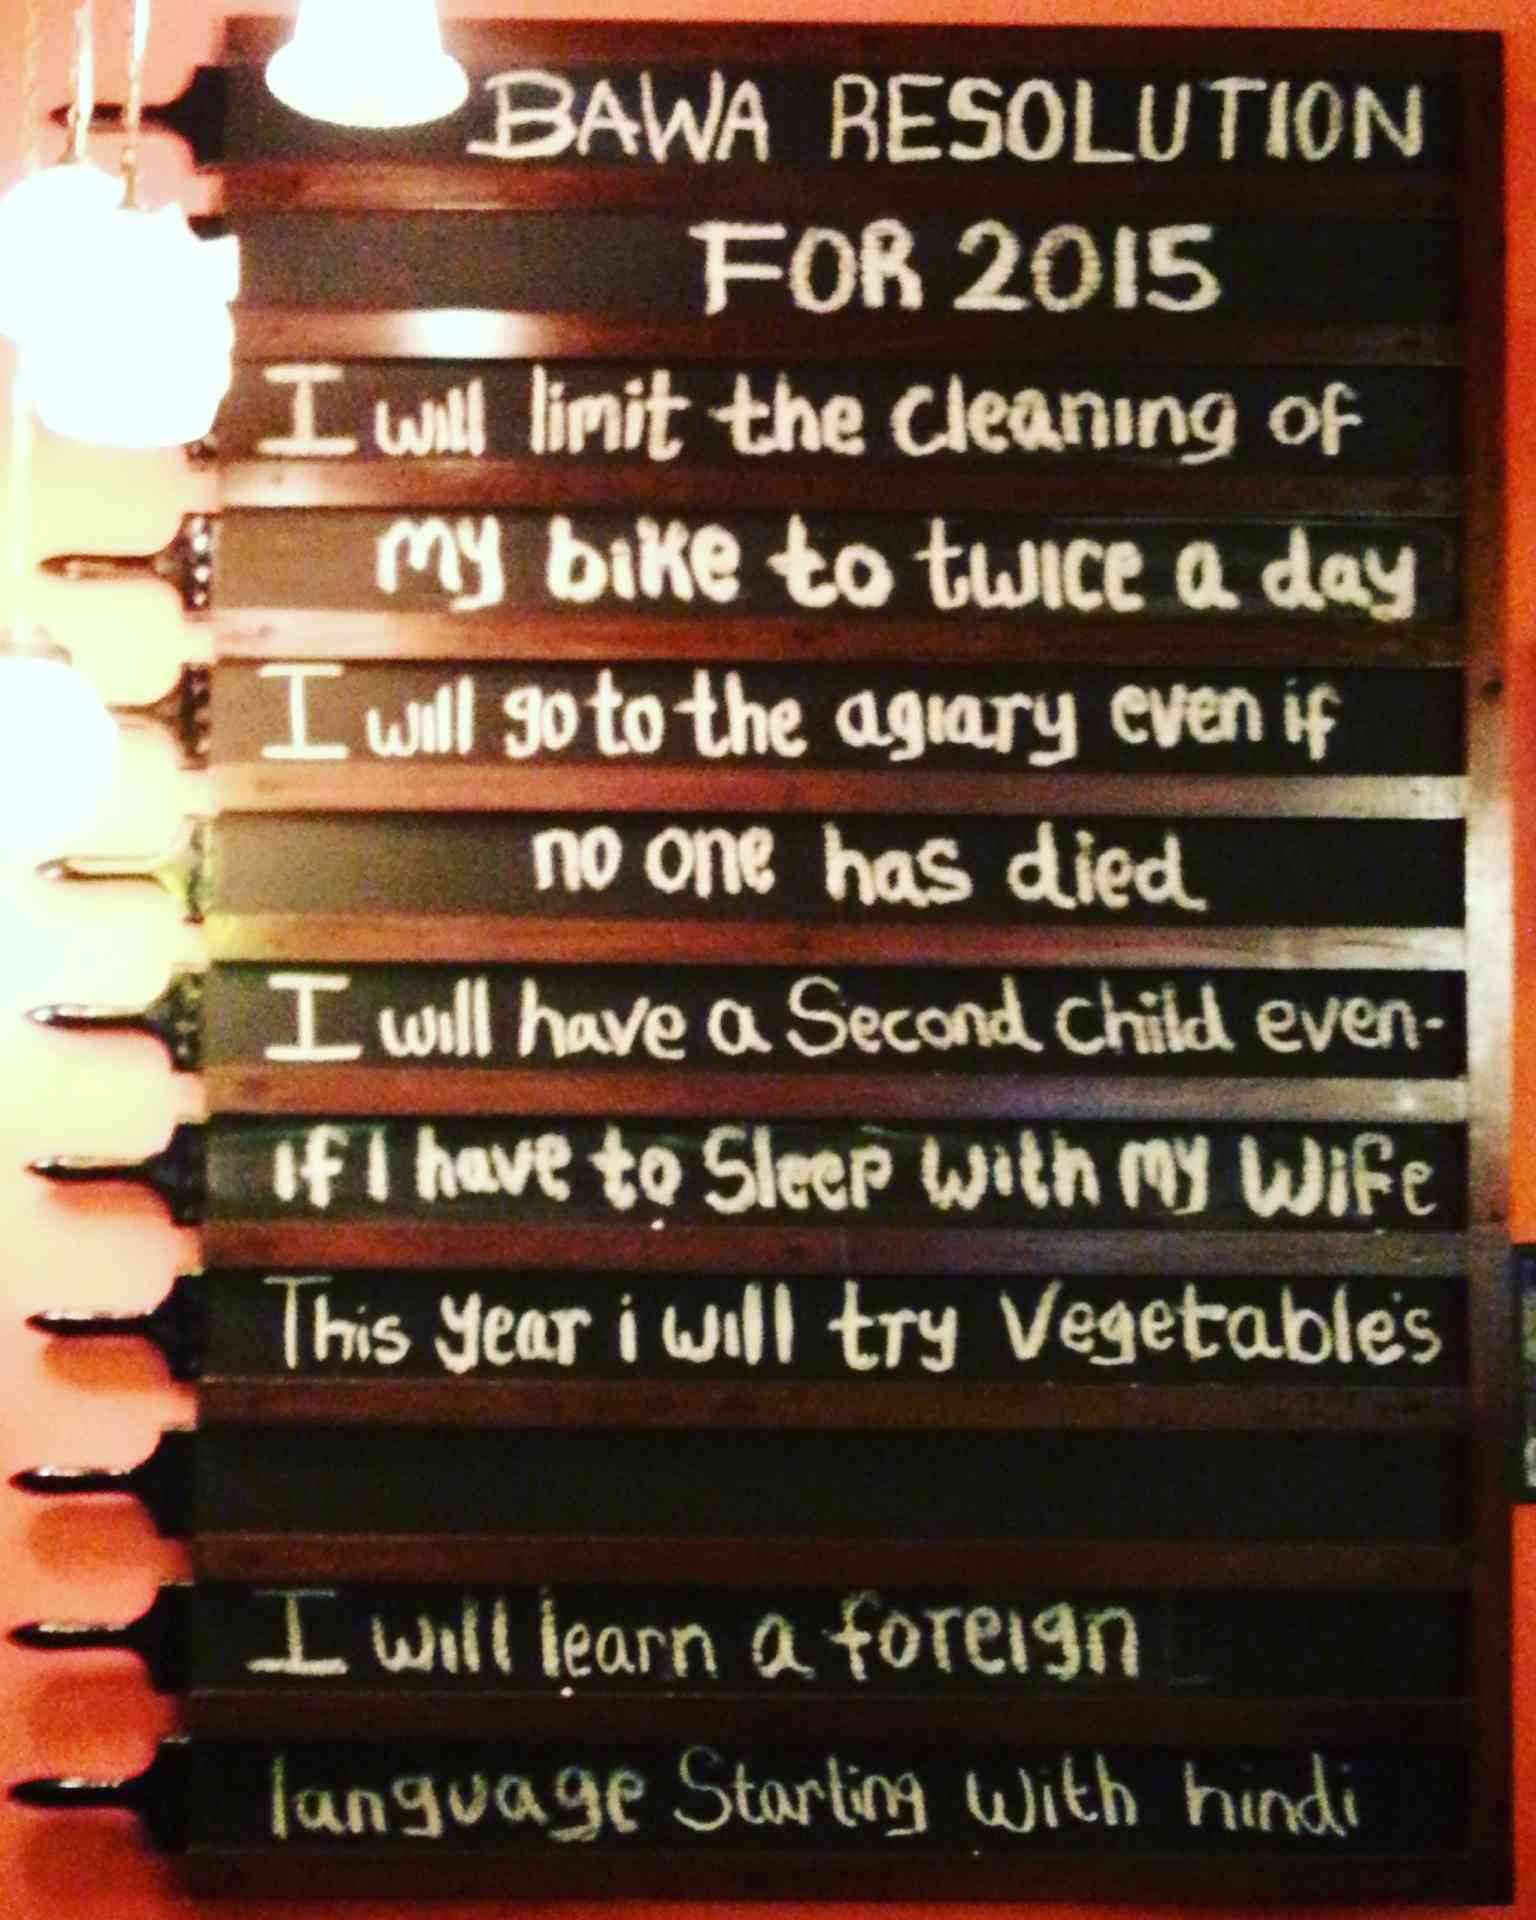 Bawa Resolutions for 2015